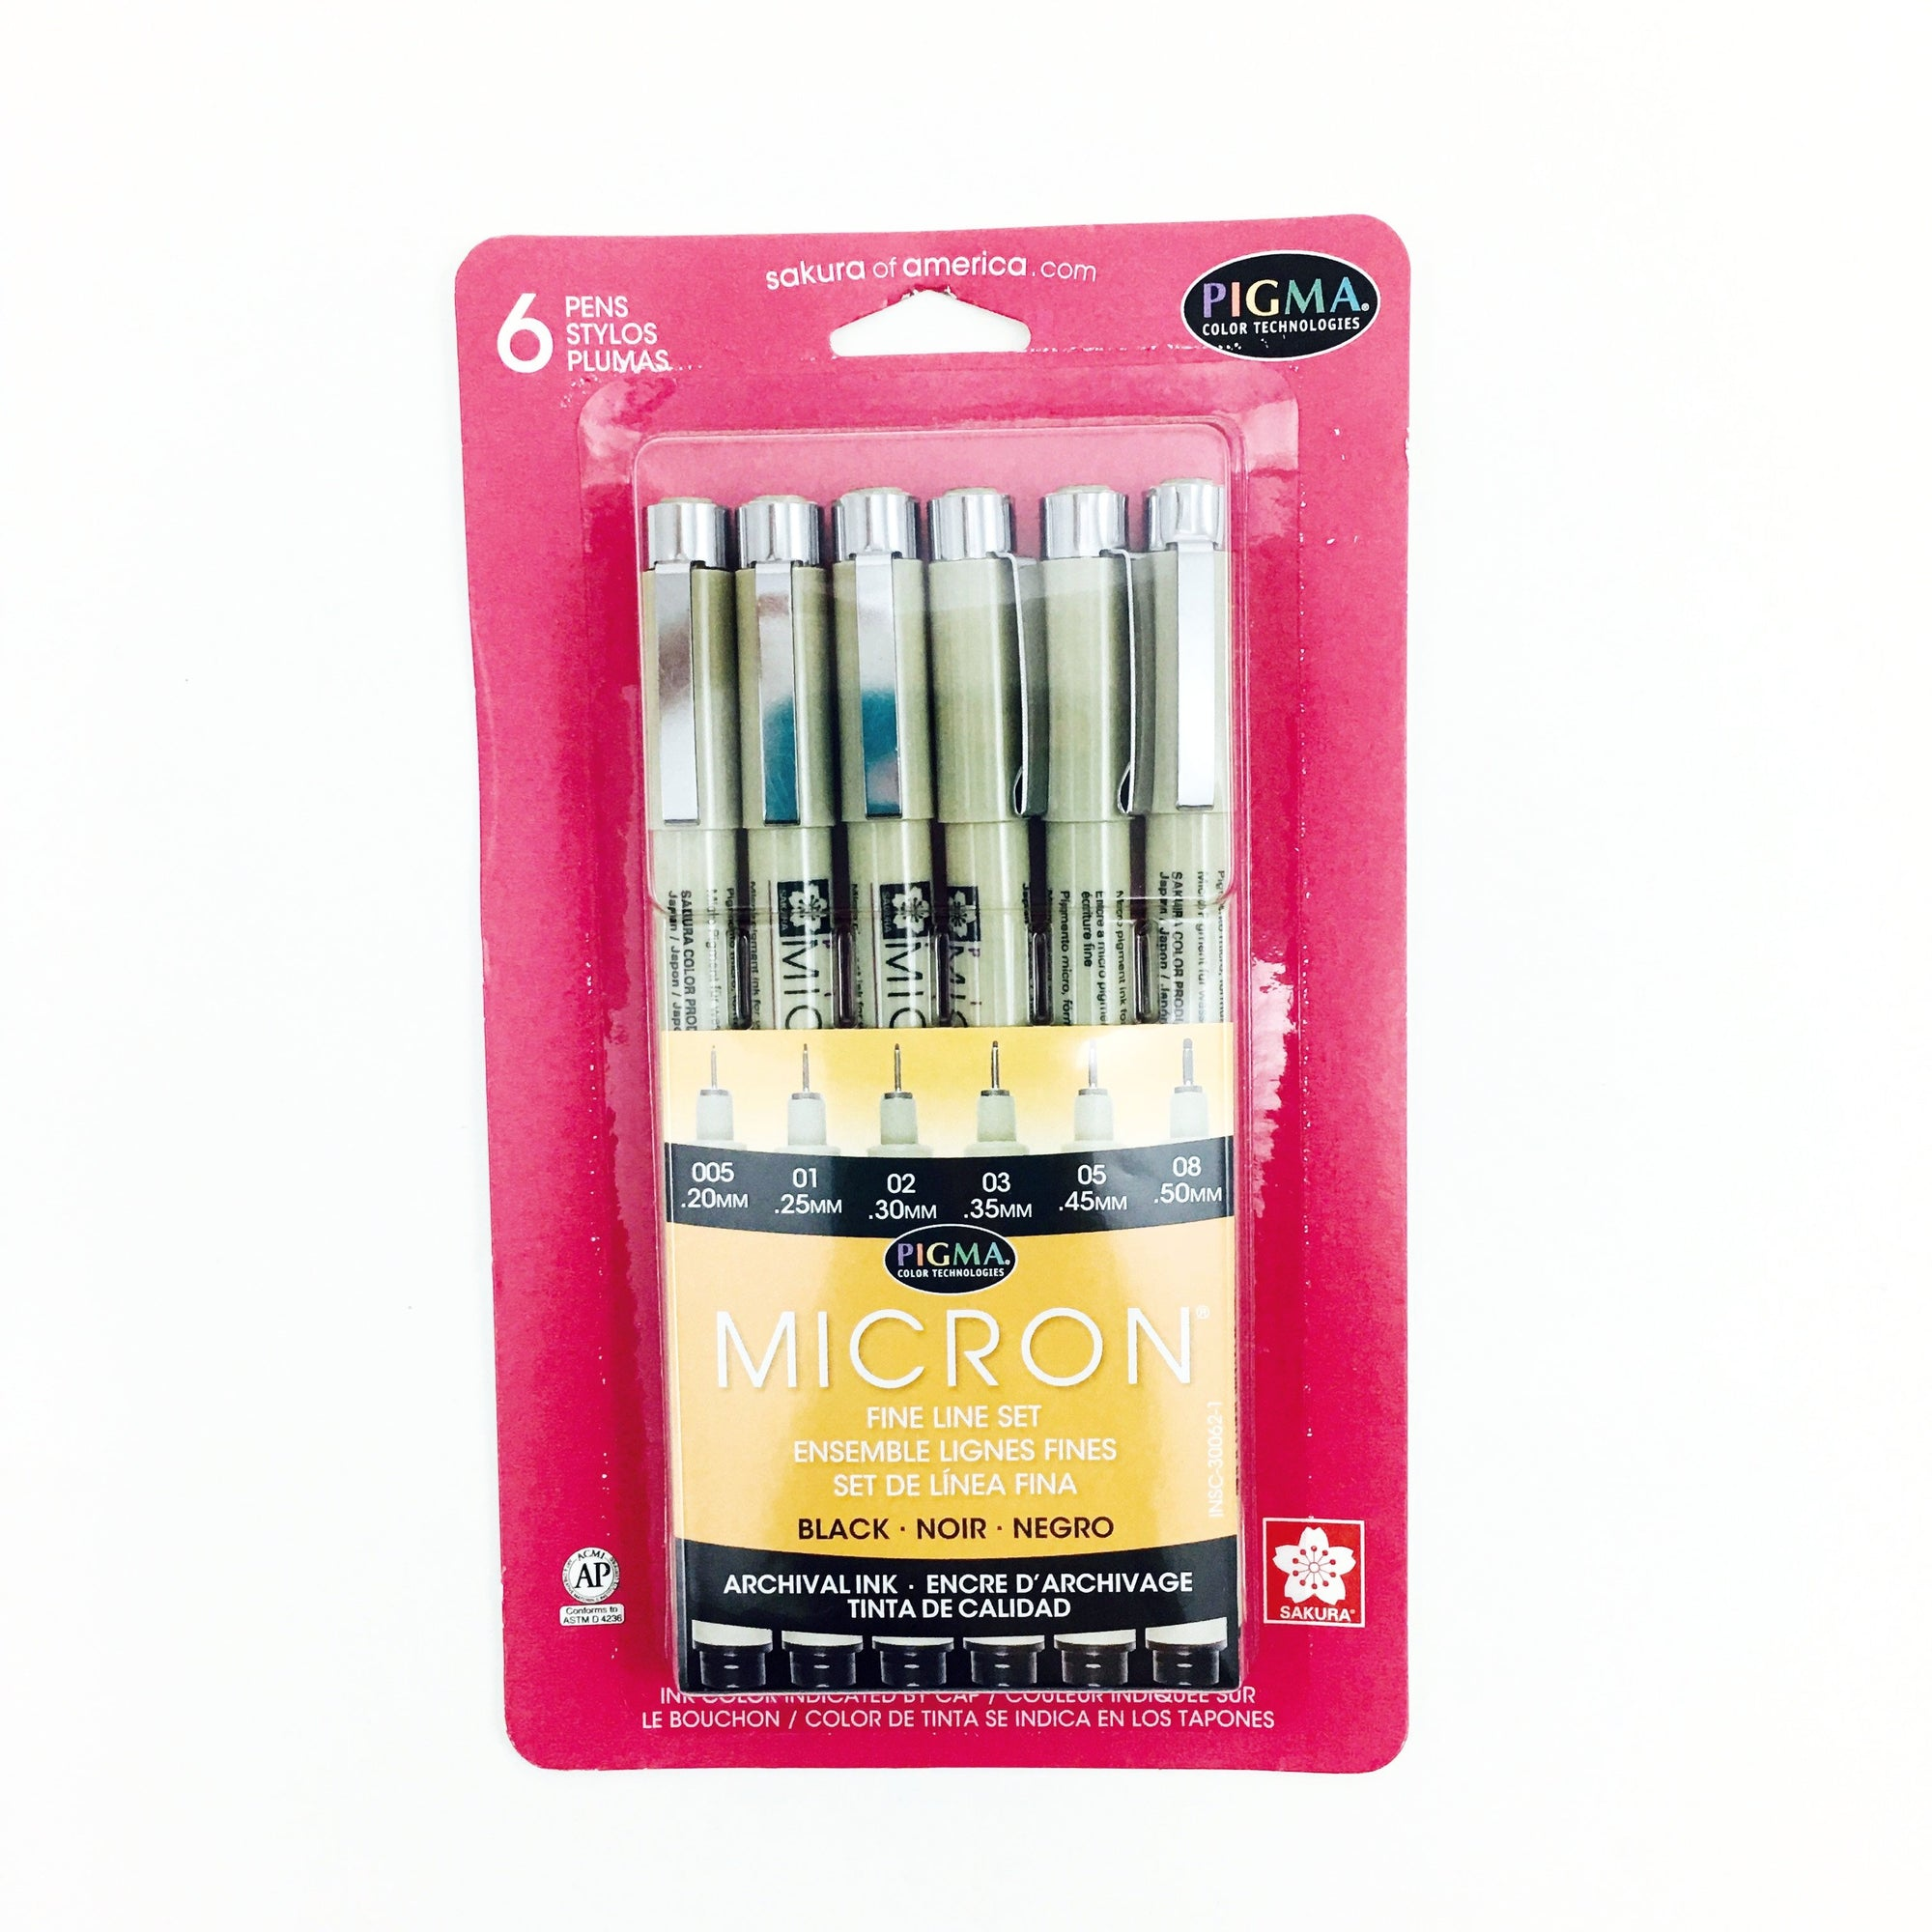 Pigma Micron Pen Sets - Black